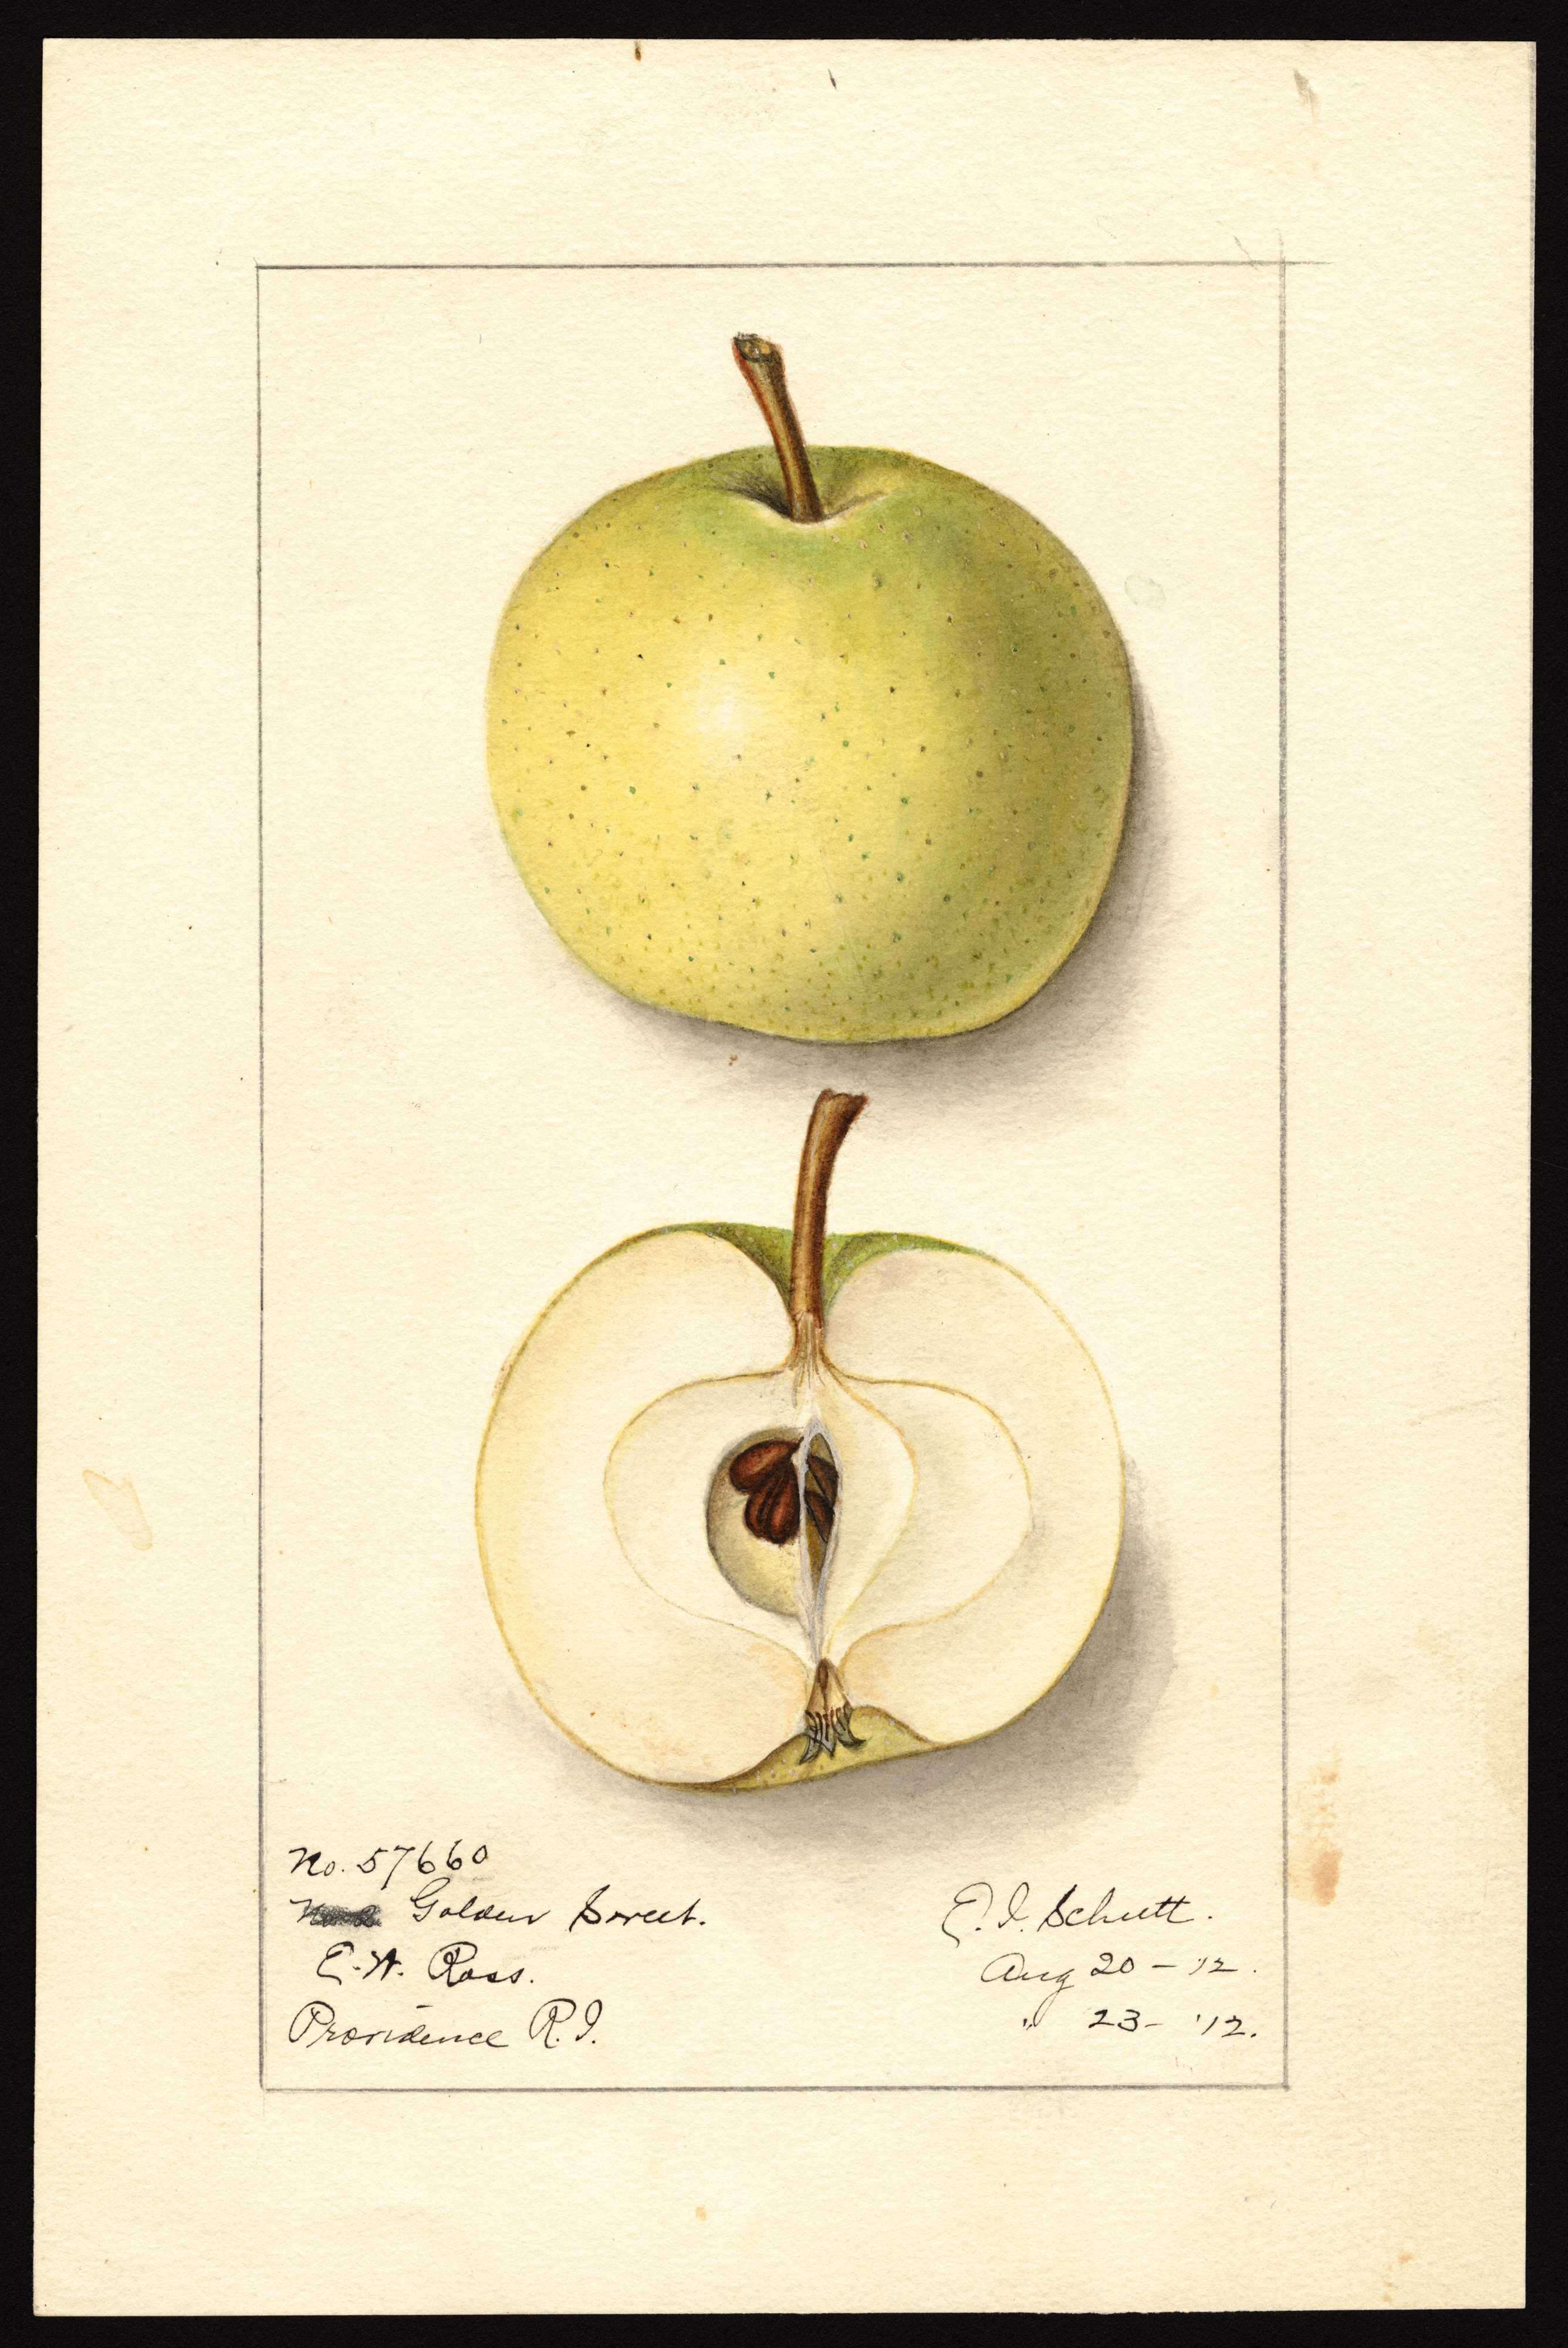 watercolor of a yellowish green apple with small brown dots